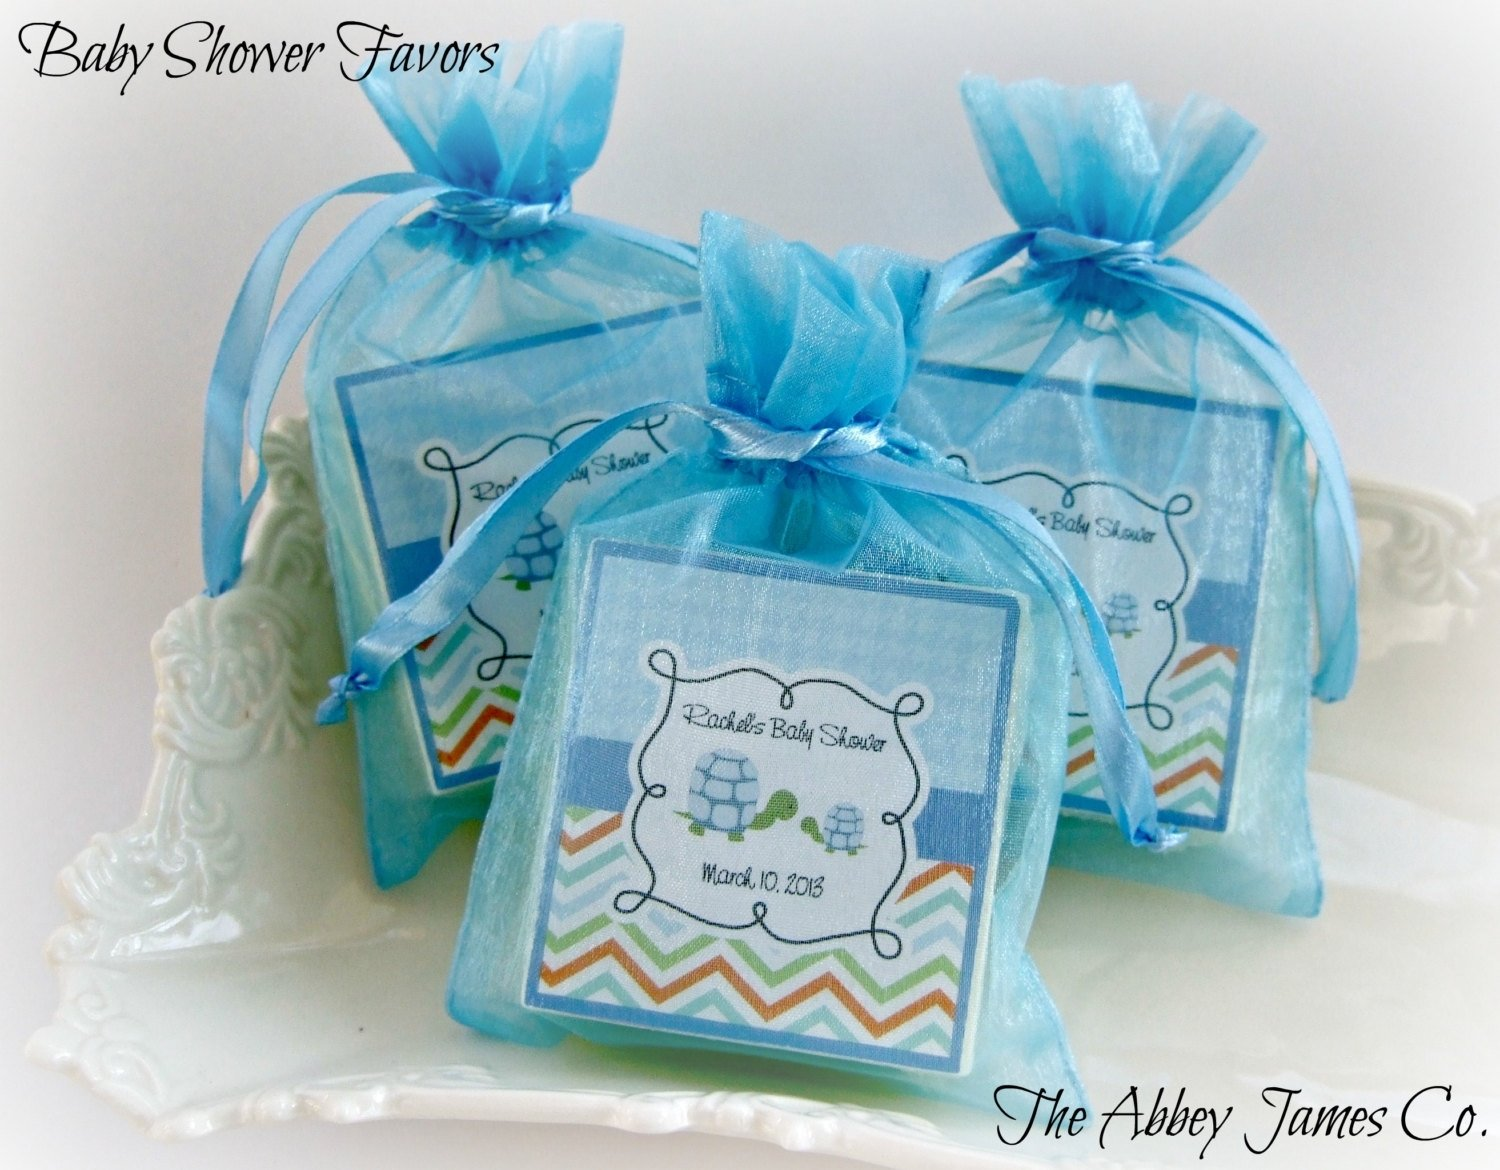 10 Most Popular Baby Shower Favor Ideas For Boys baby shower favor ideas boy e280a2 baby showers ideas 2021